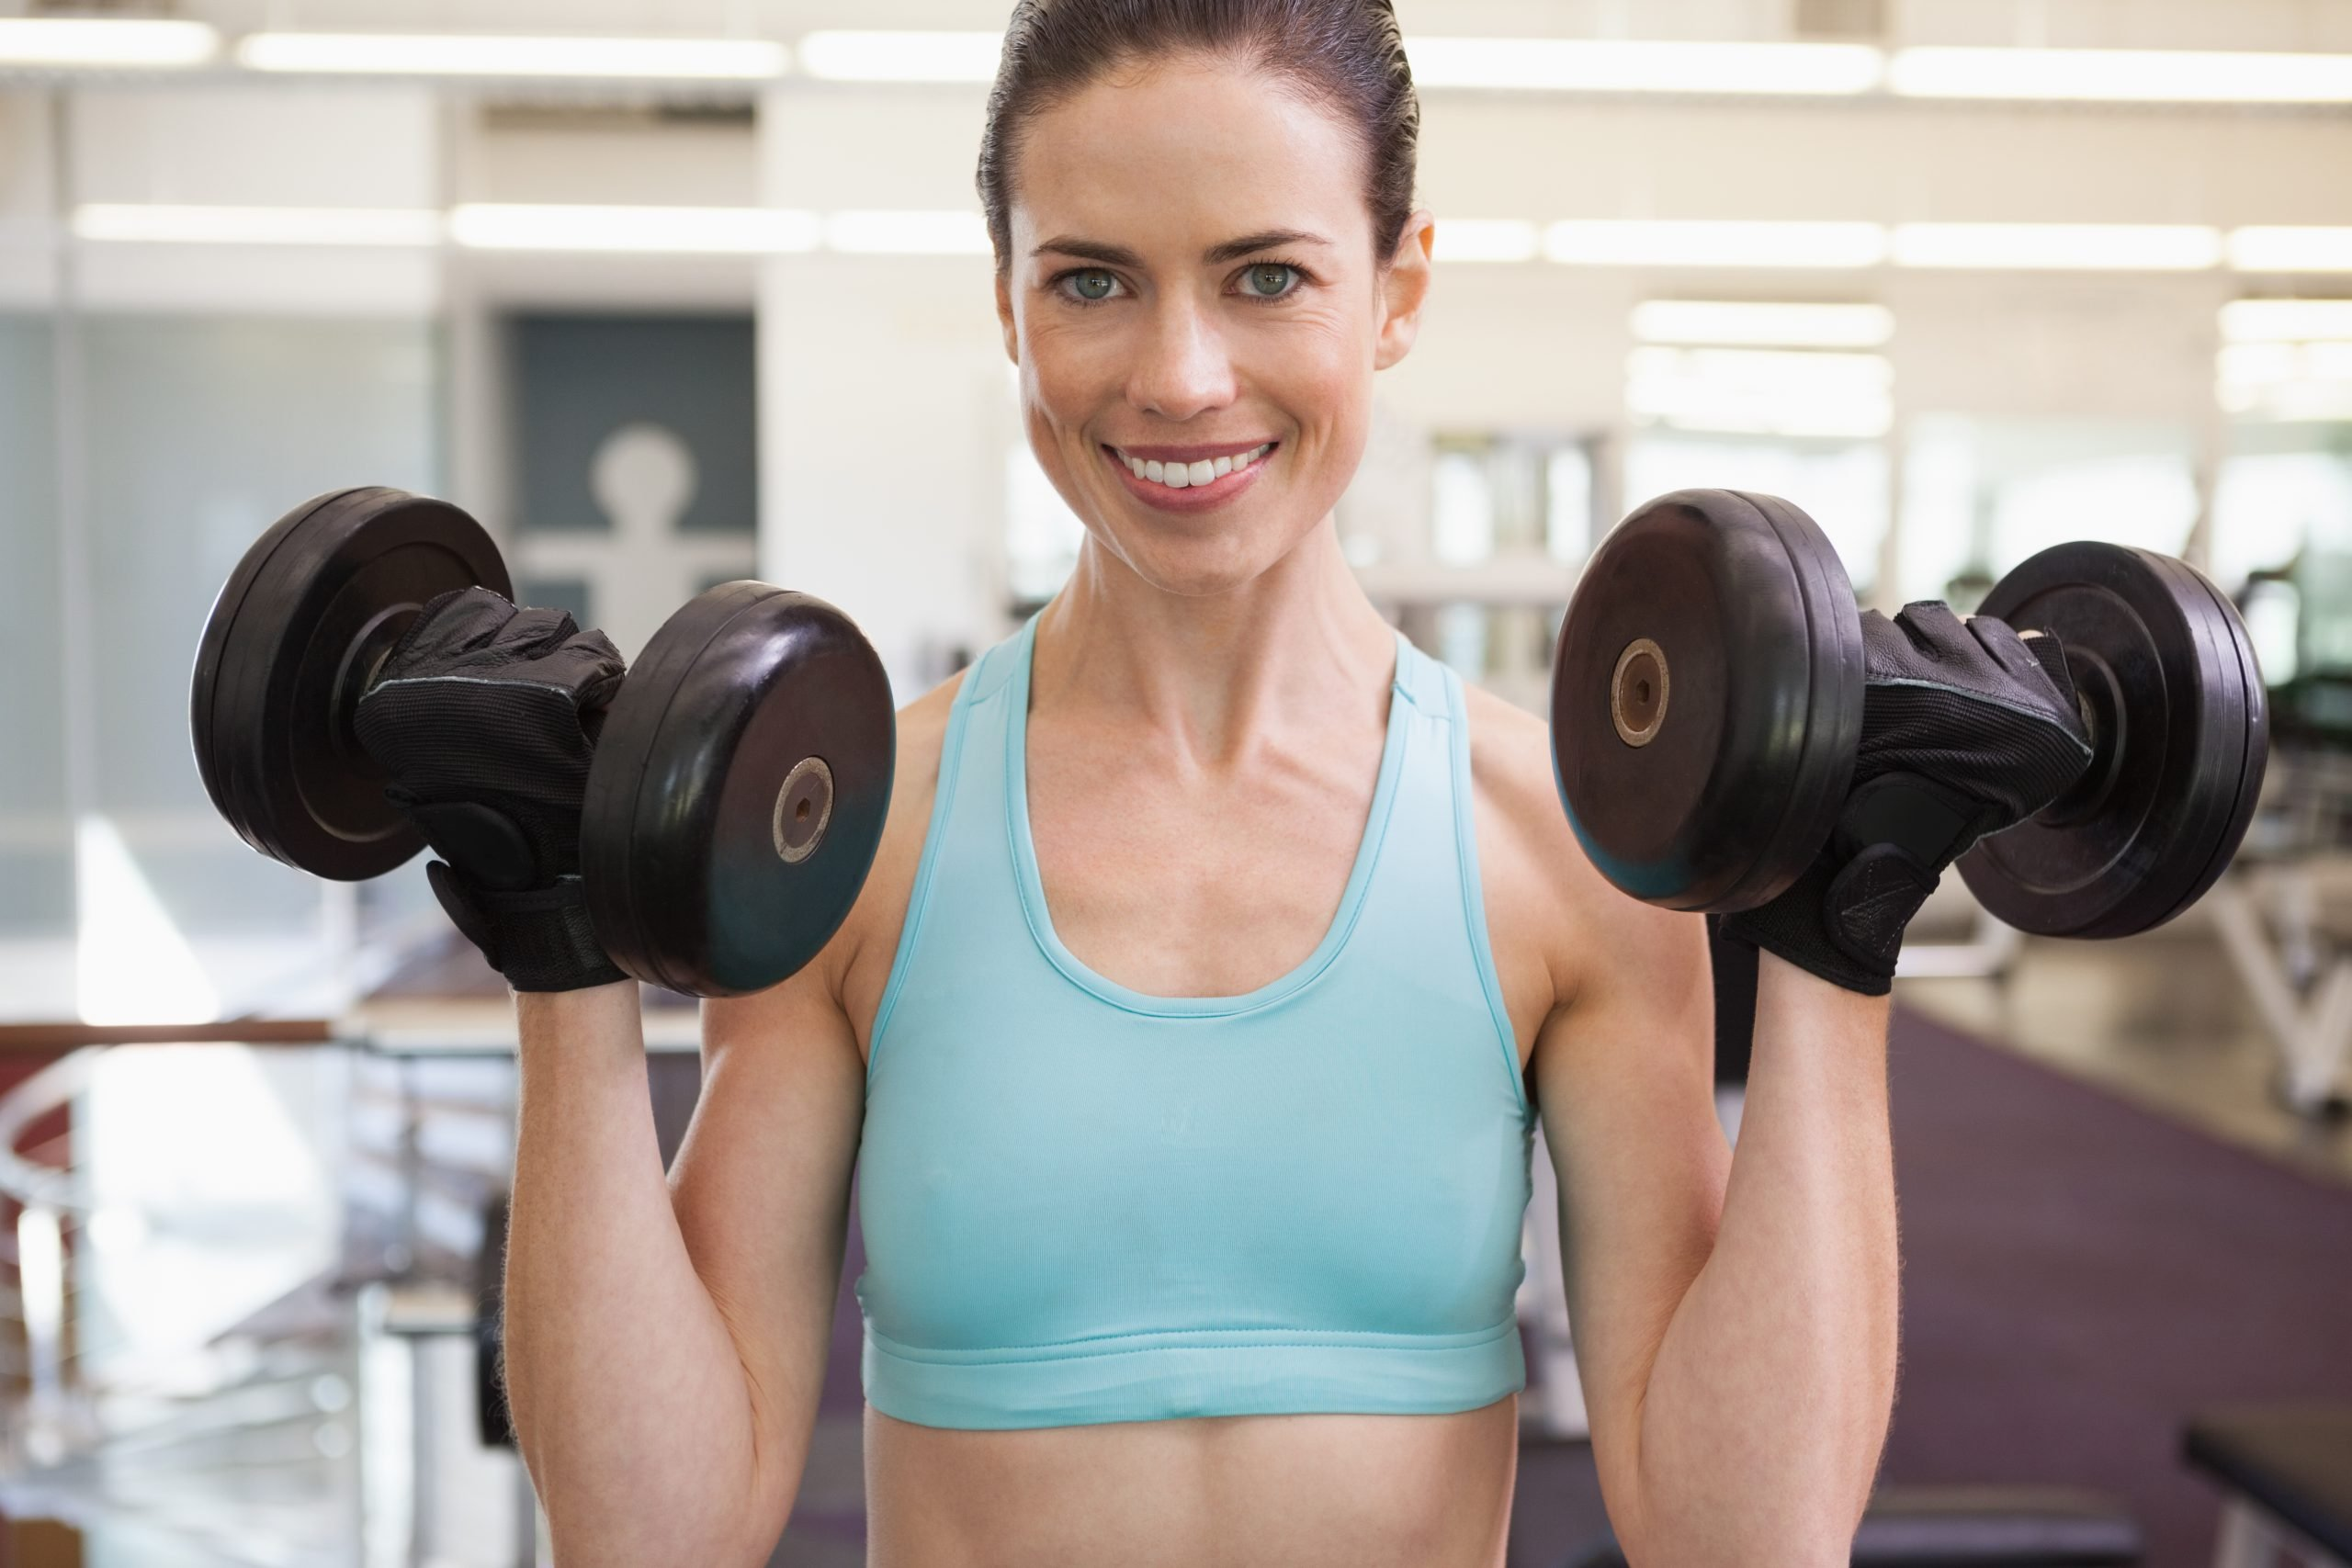 Woman-At-The-Gym-Holding-Heavy-Dumbbells-Smiling